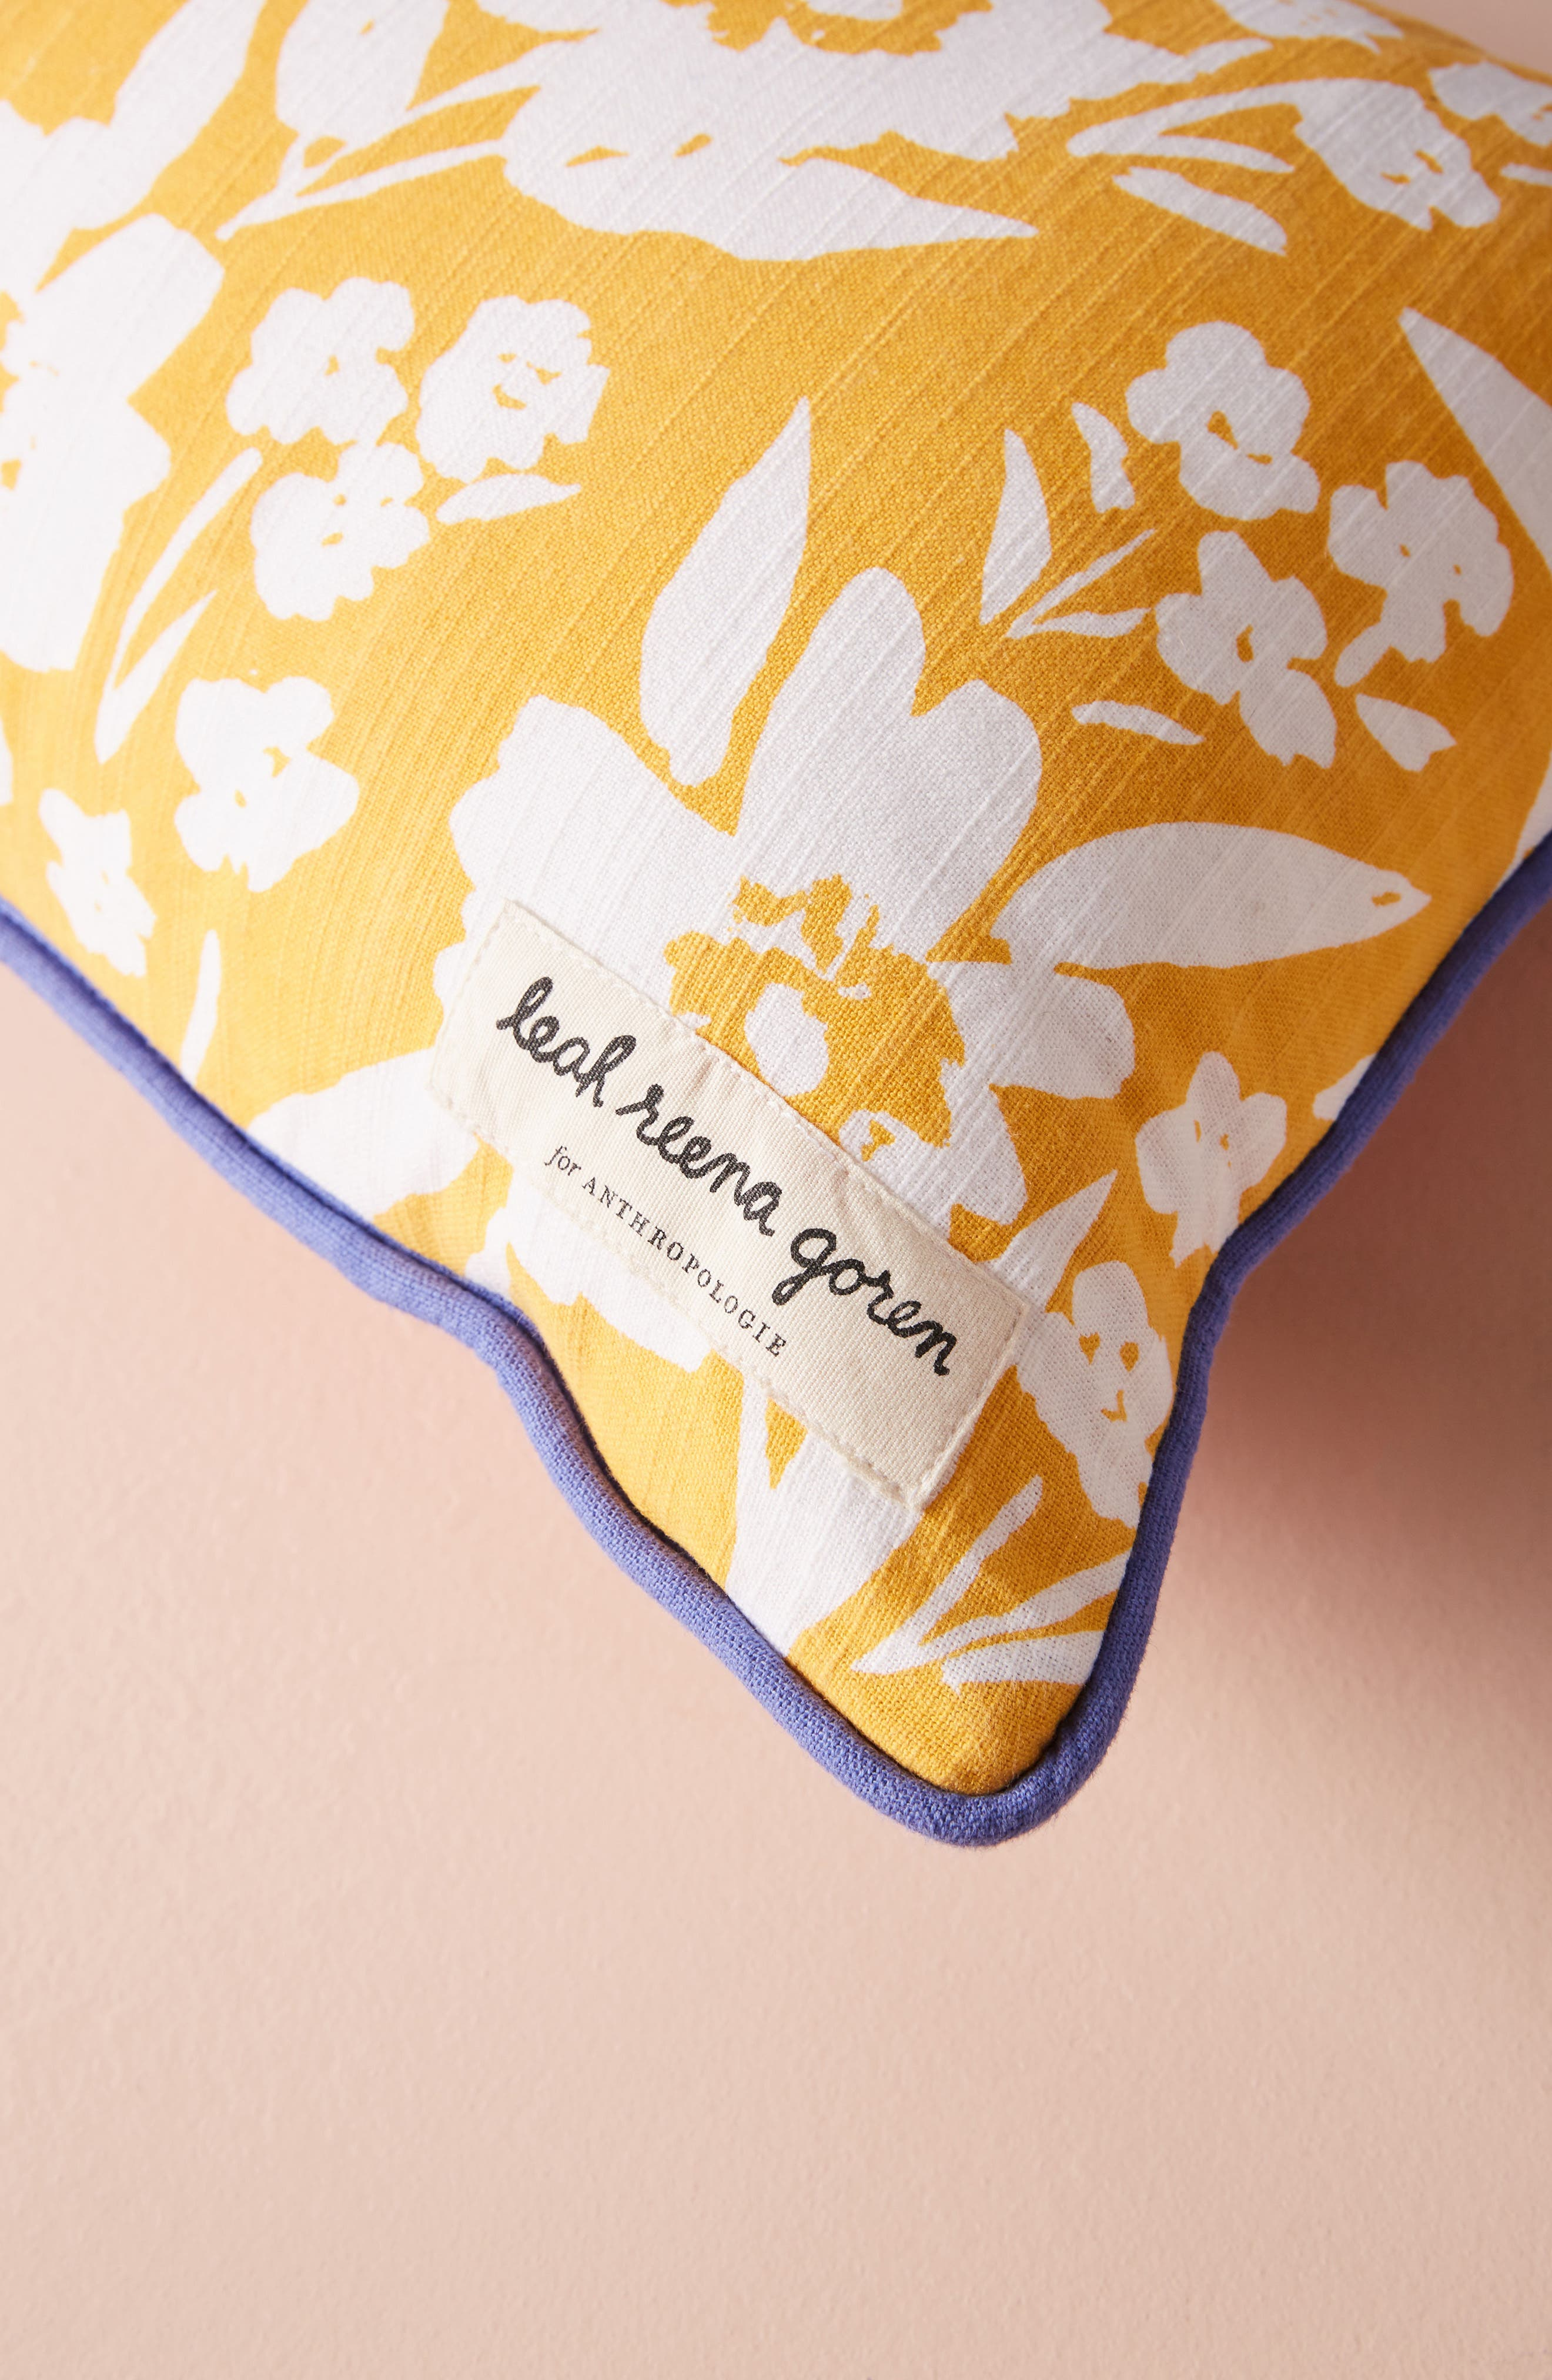 ANTHROPOLOGIE,                             Painted Poppies Accent Pillow,                             Alternate thumbnail 3, color,                             650